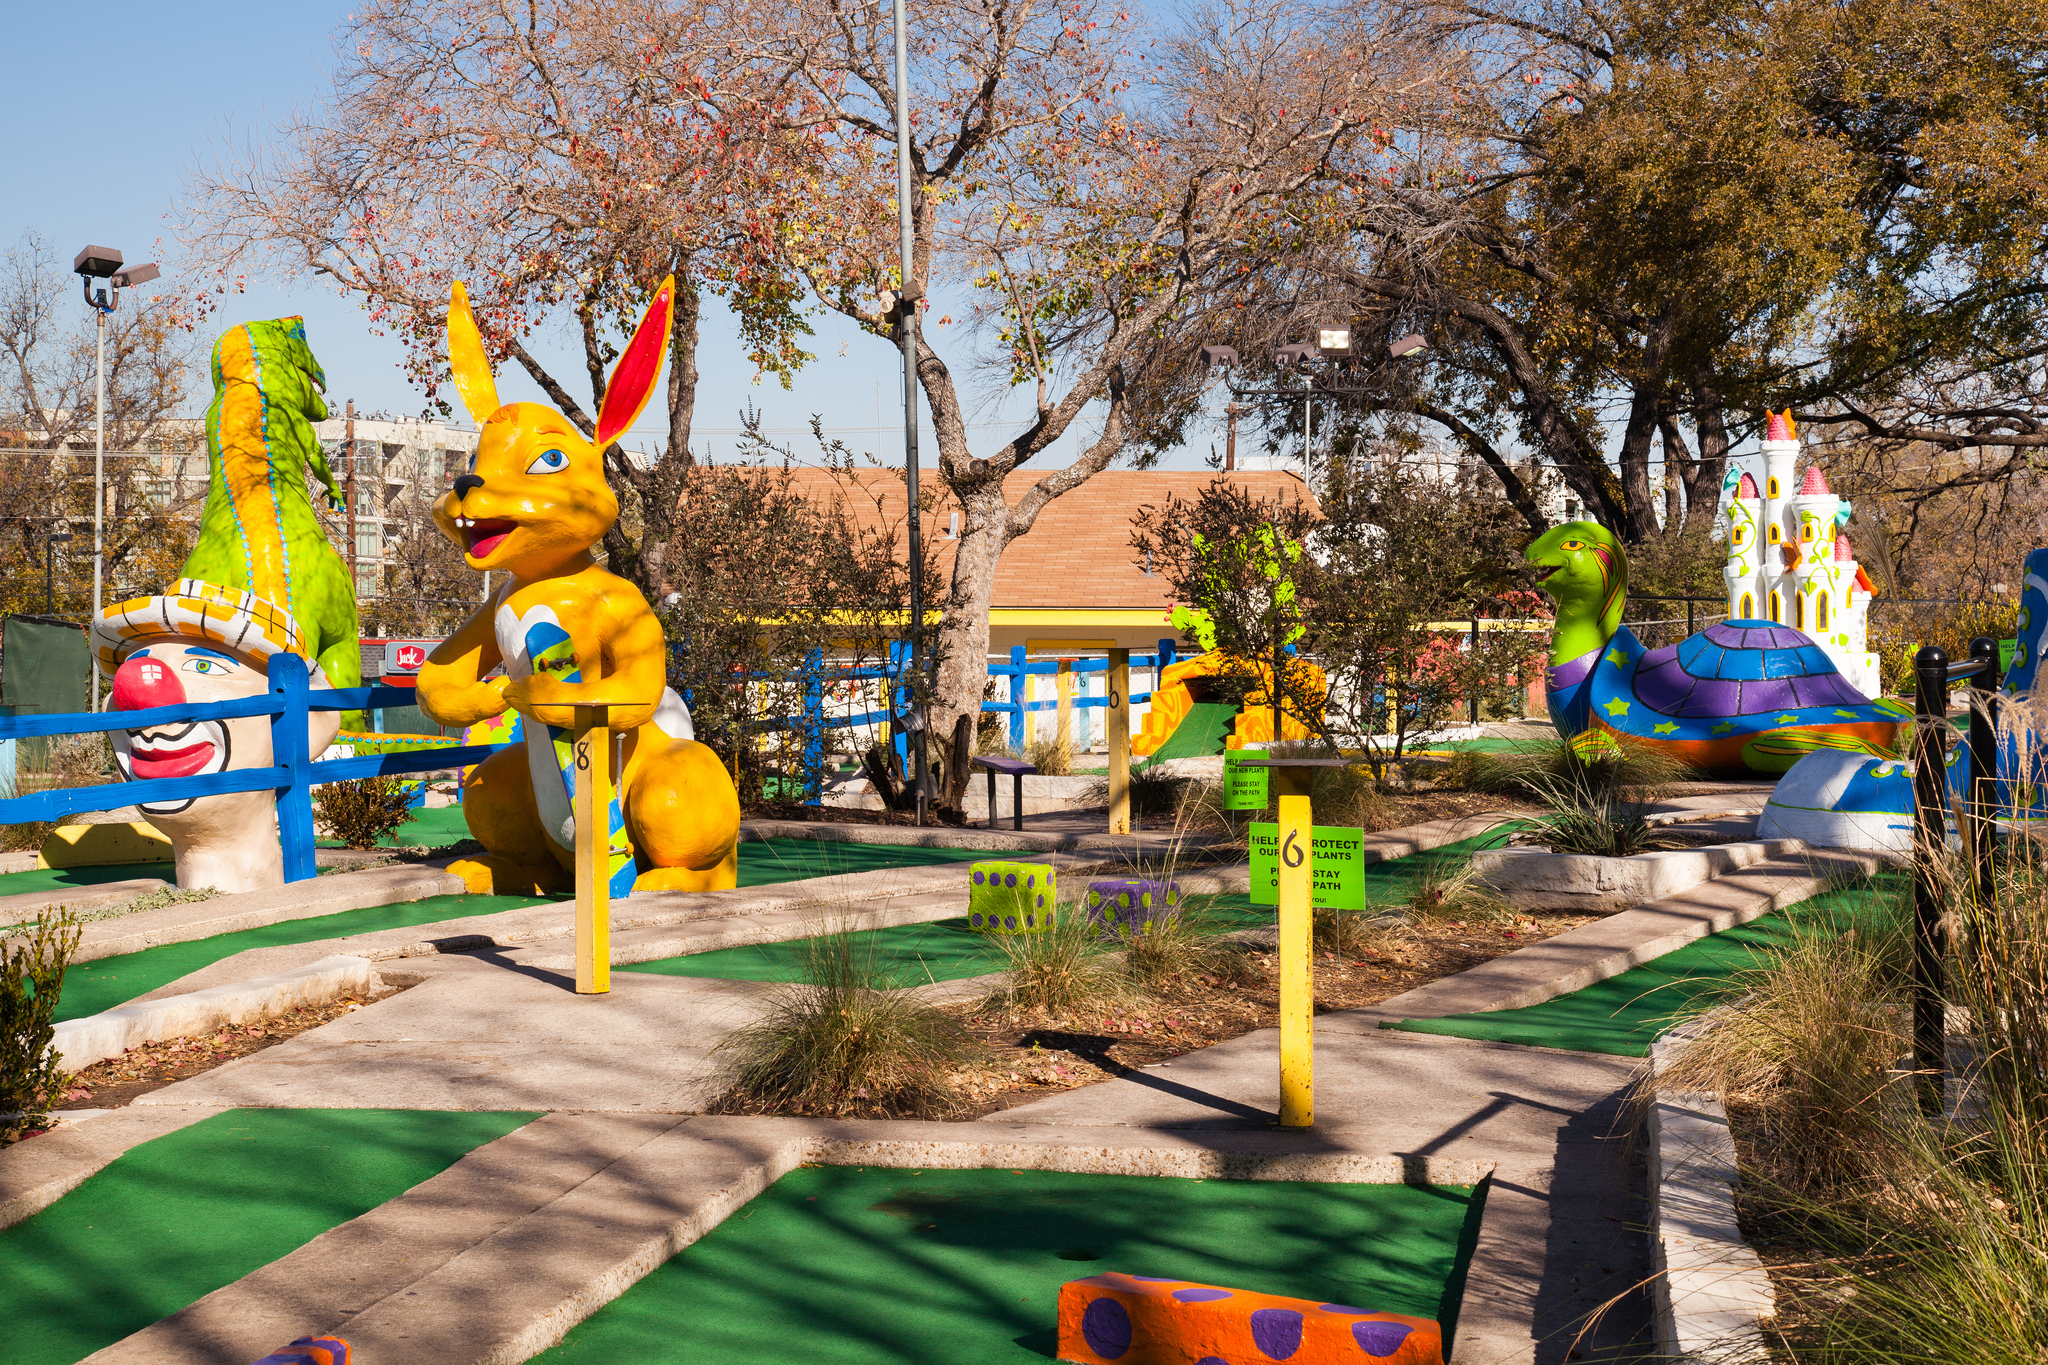 Austincom This Is Why Peter Pan Mini Golf Is So Loved By Austinites